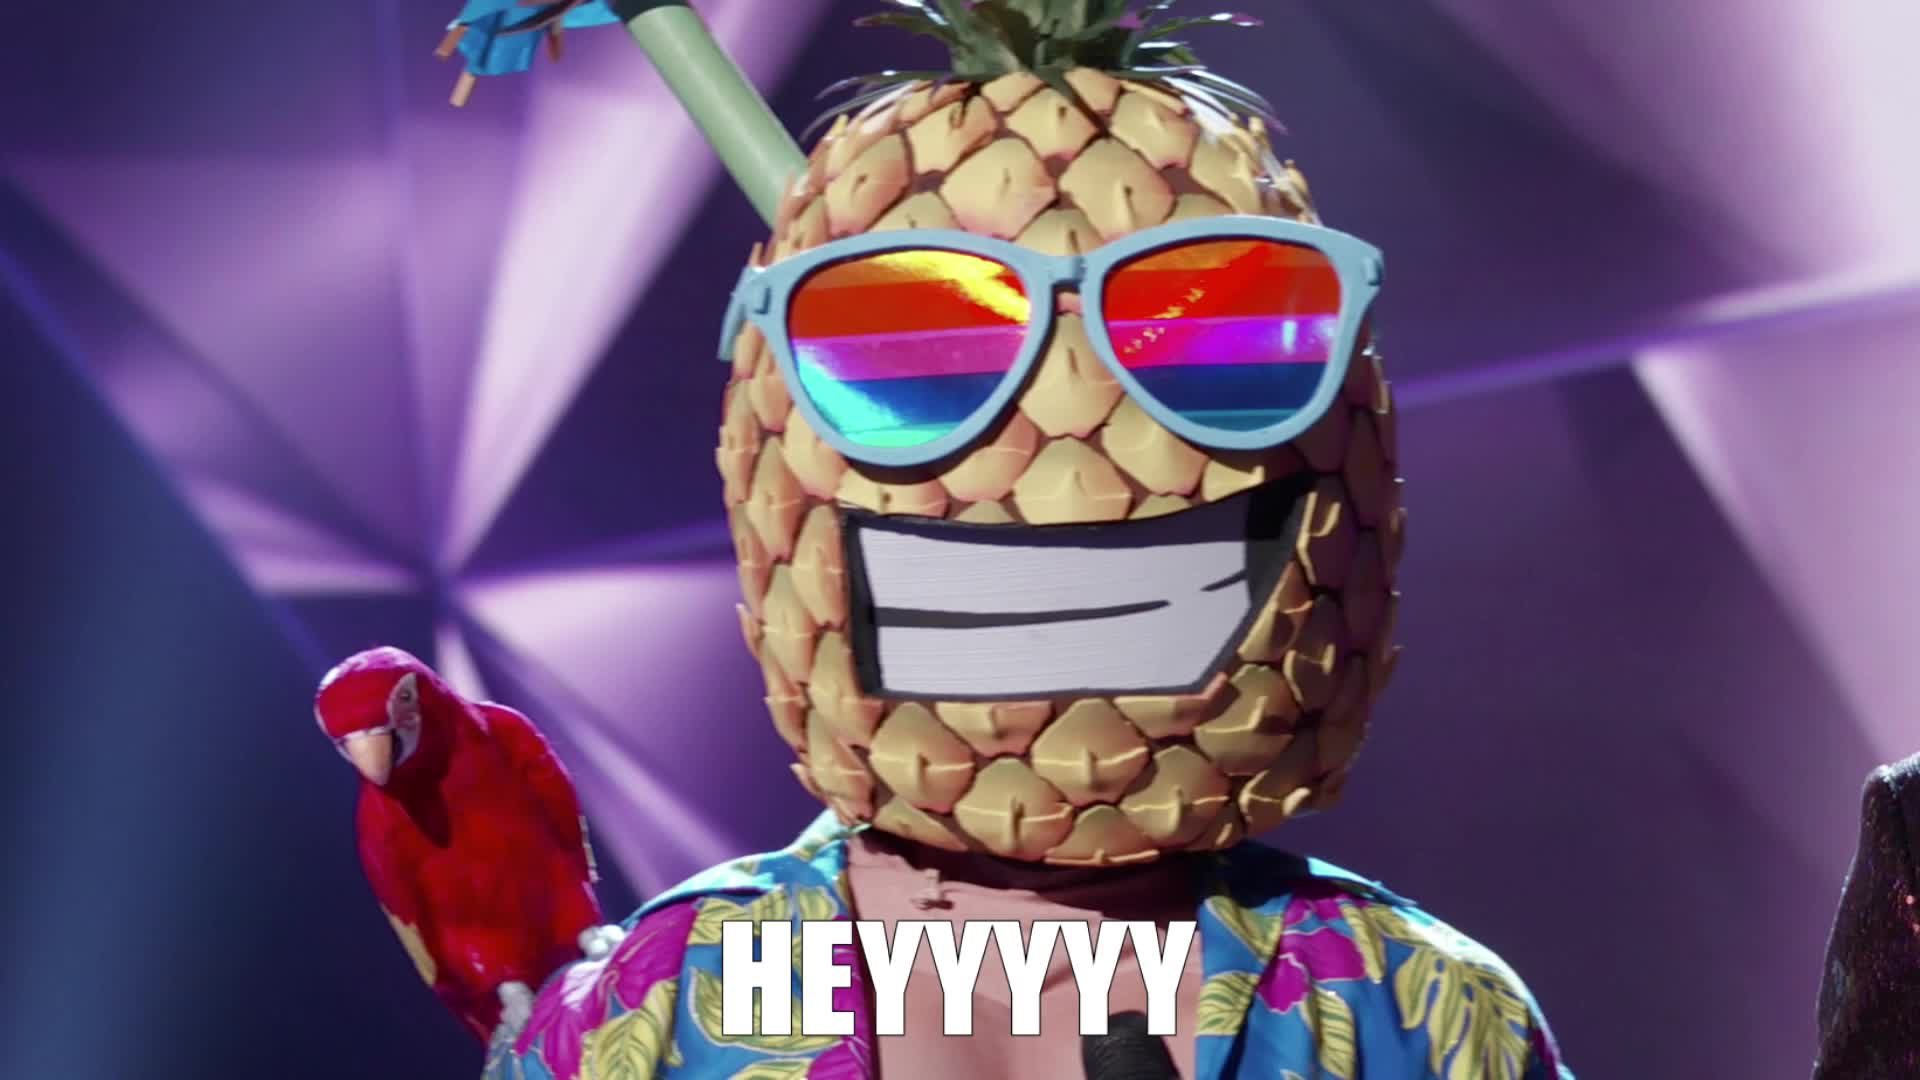 hello, hey, hey there, heyyy, hi, masked singer, the masked singer, the masked singer on fox, Pineapple Heyyy GIFs